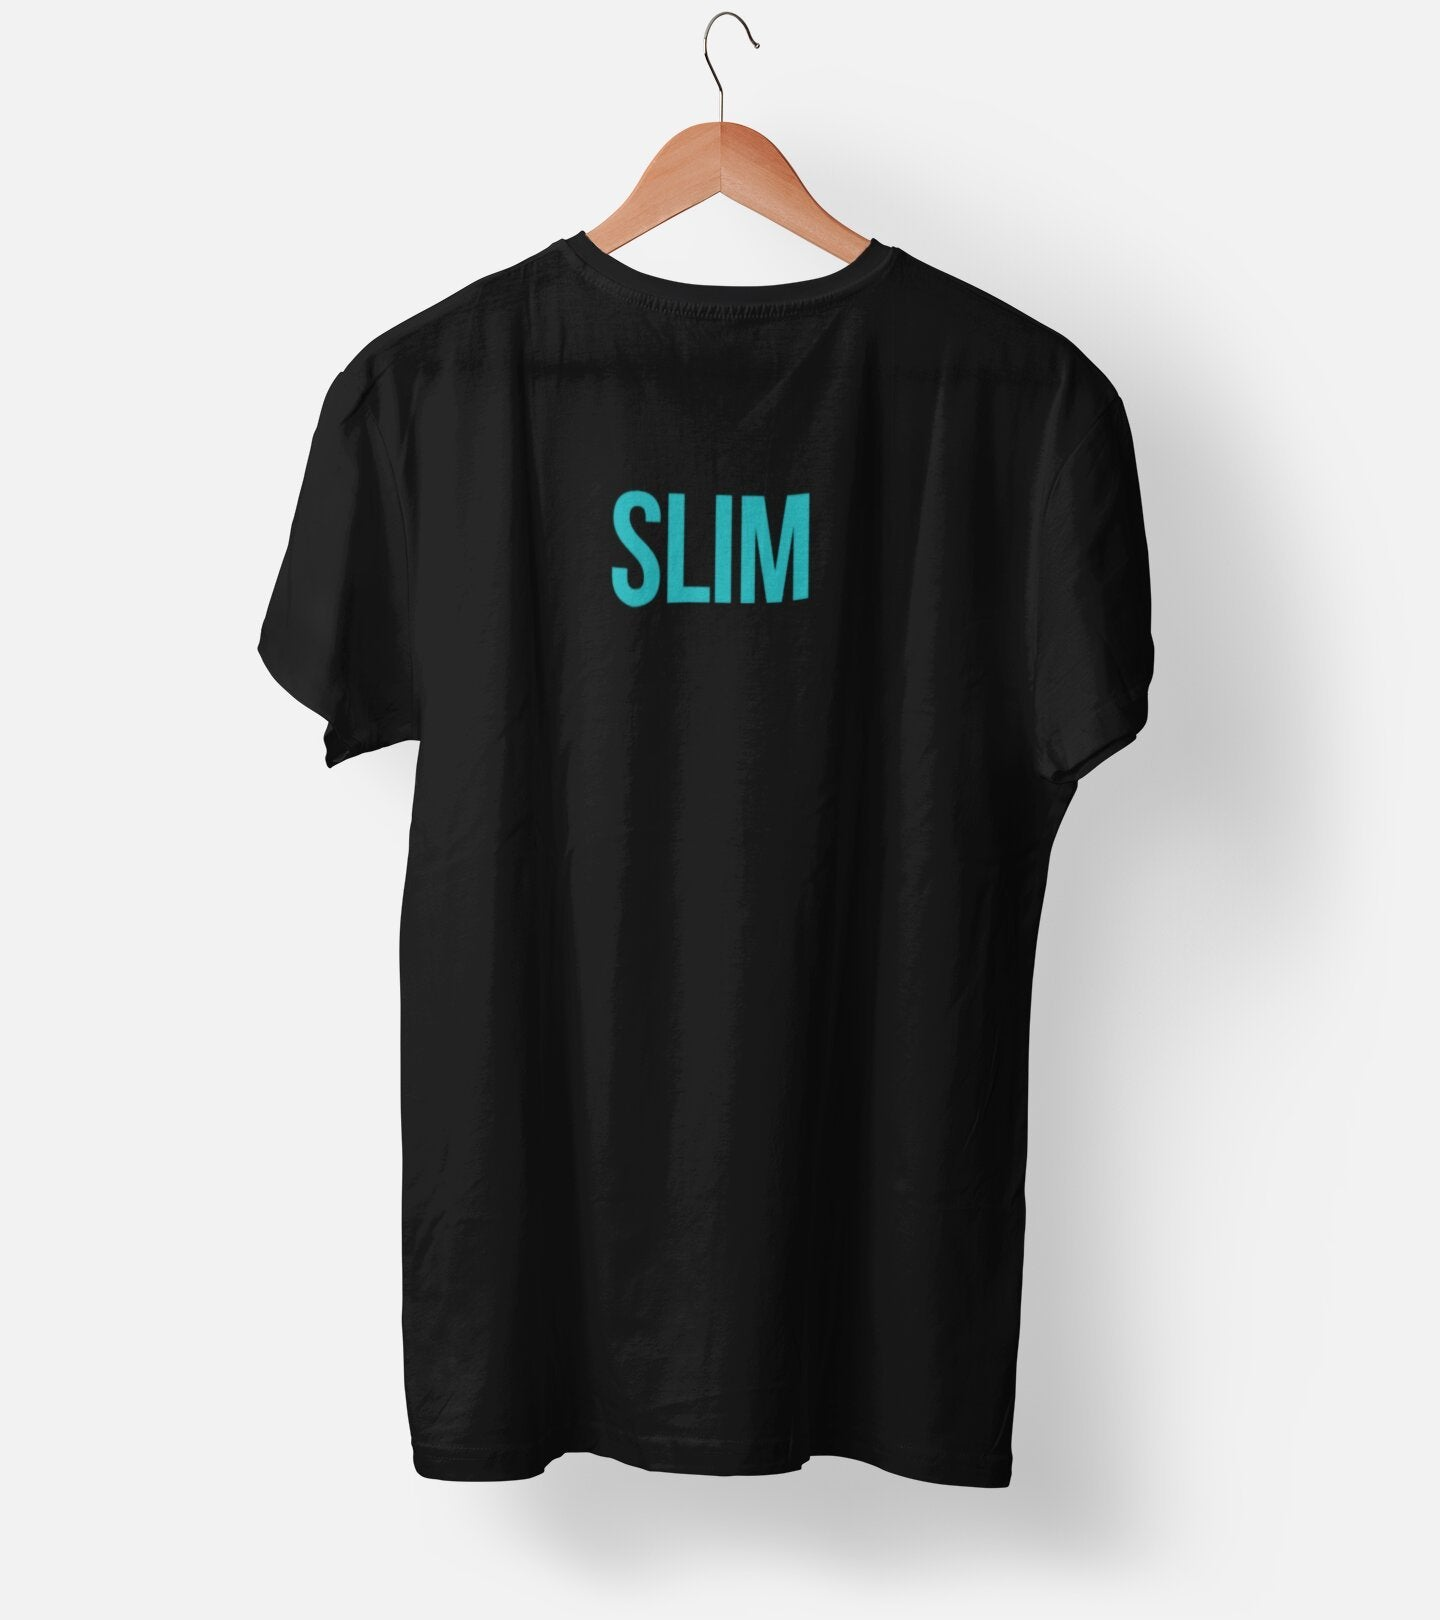 Slim Fitness Men's T-Shirt